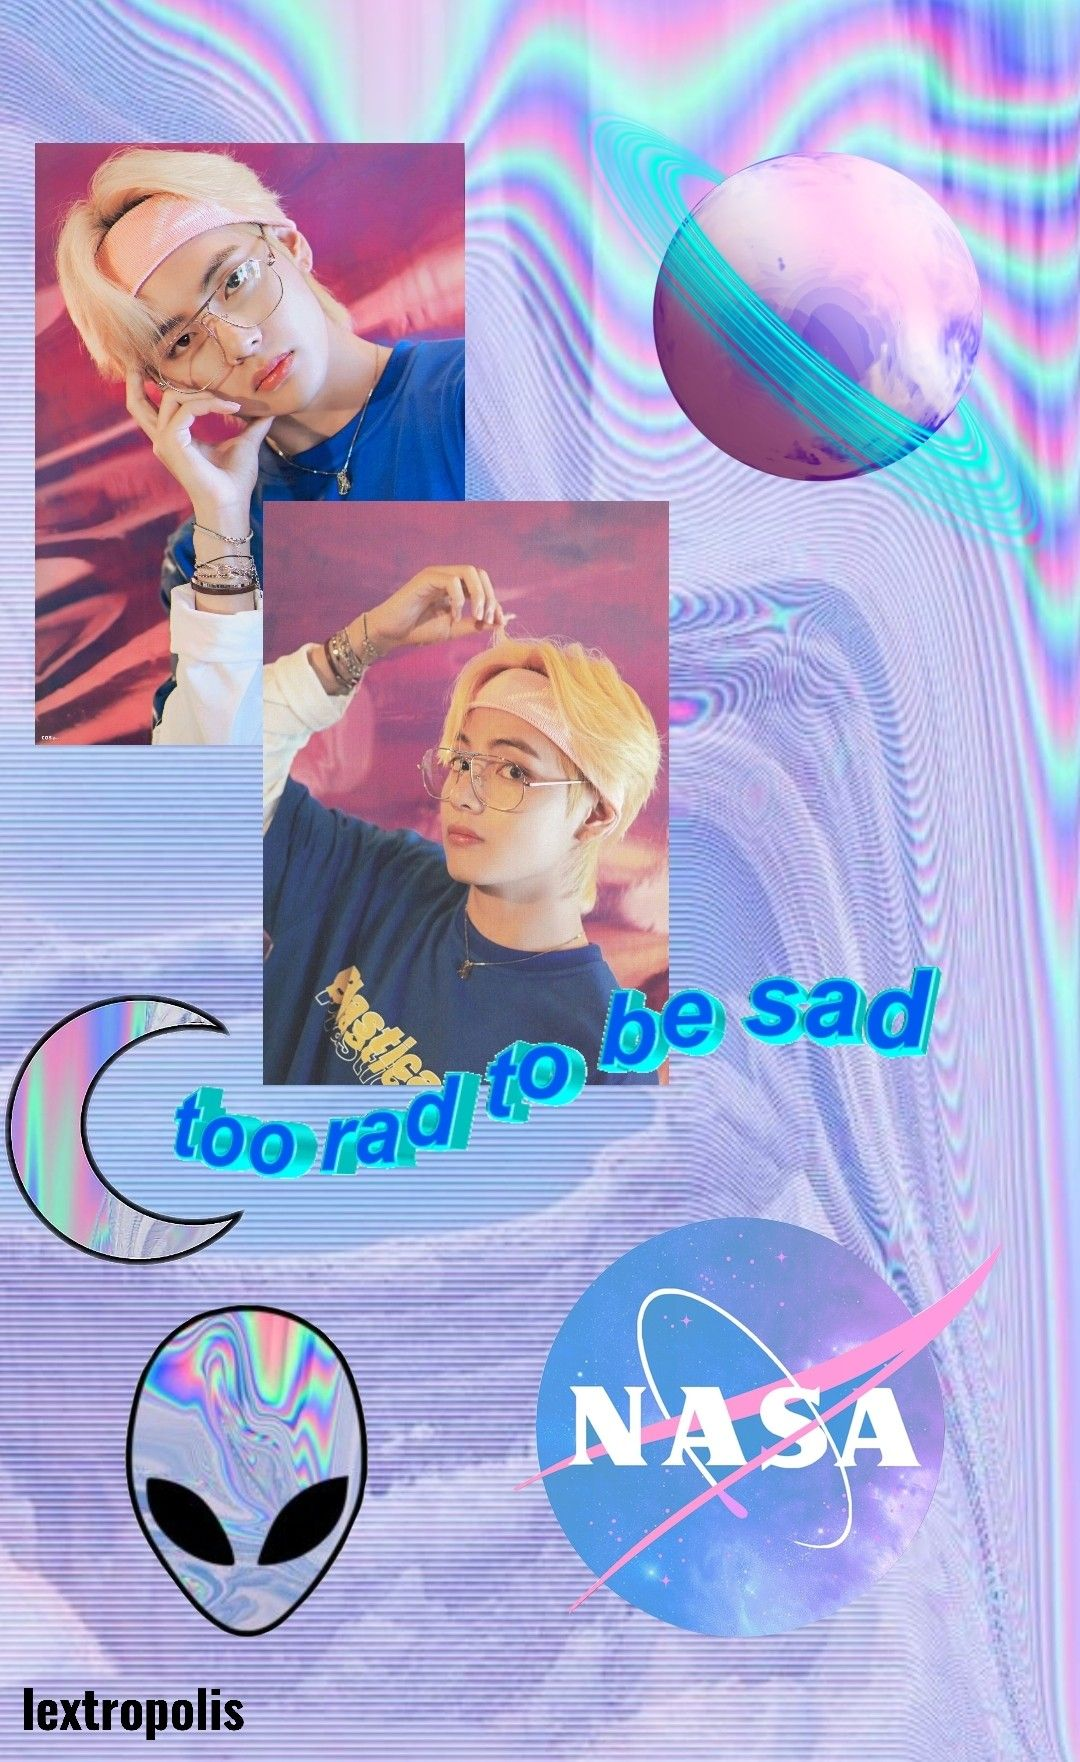 Taehyung 90s Style Holographic Aesthetic Wallpaper